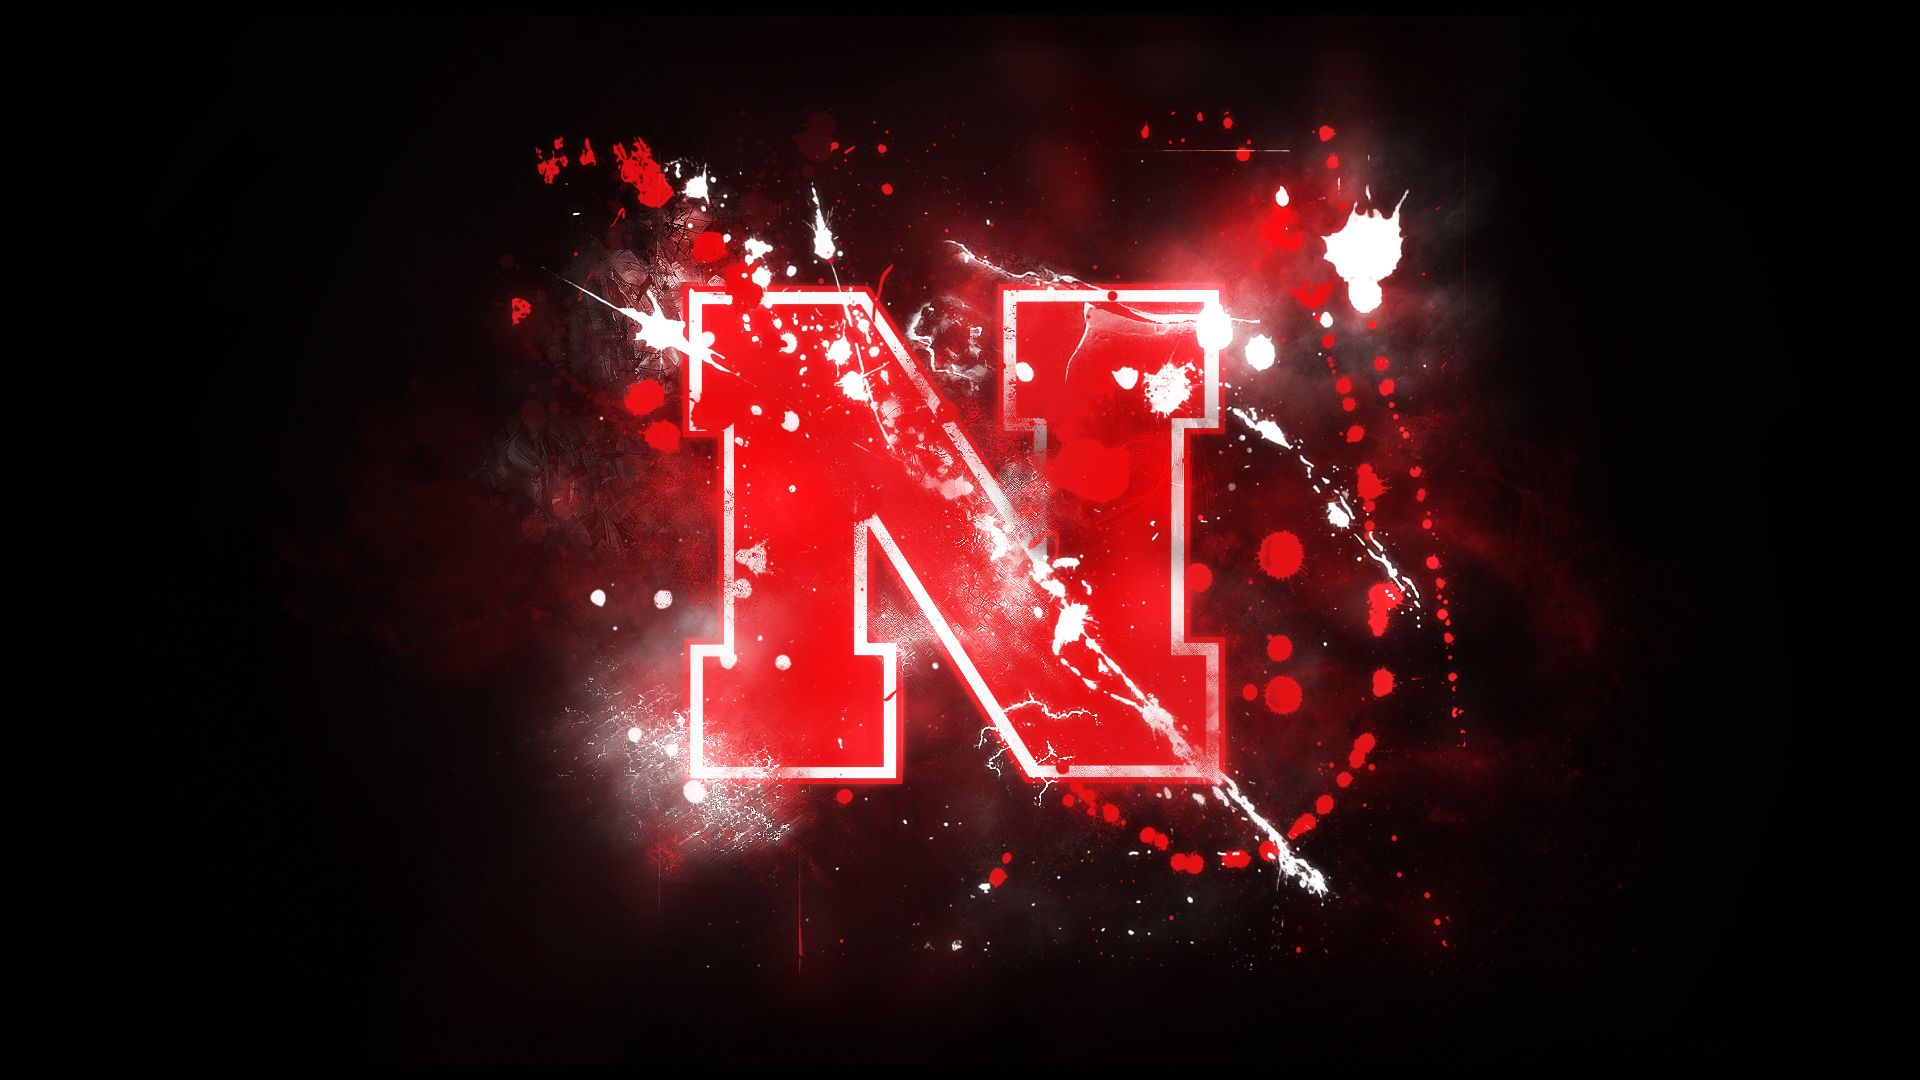 35 Nebraska Wallpapers   Download at WallpaperBro 1920x1080